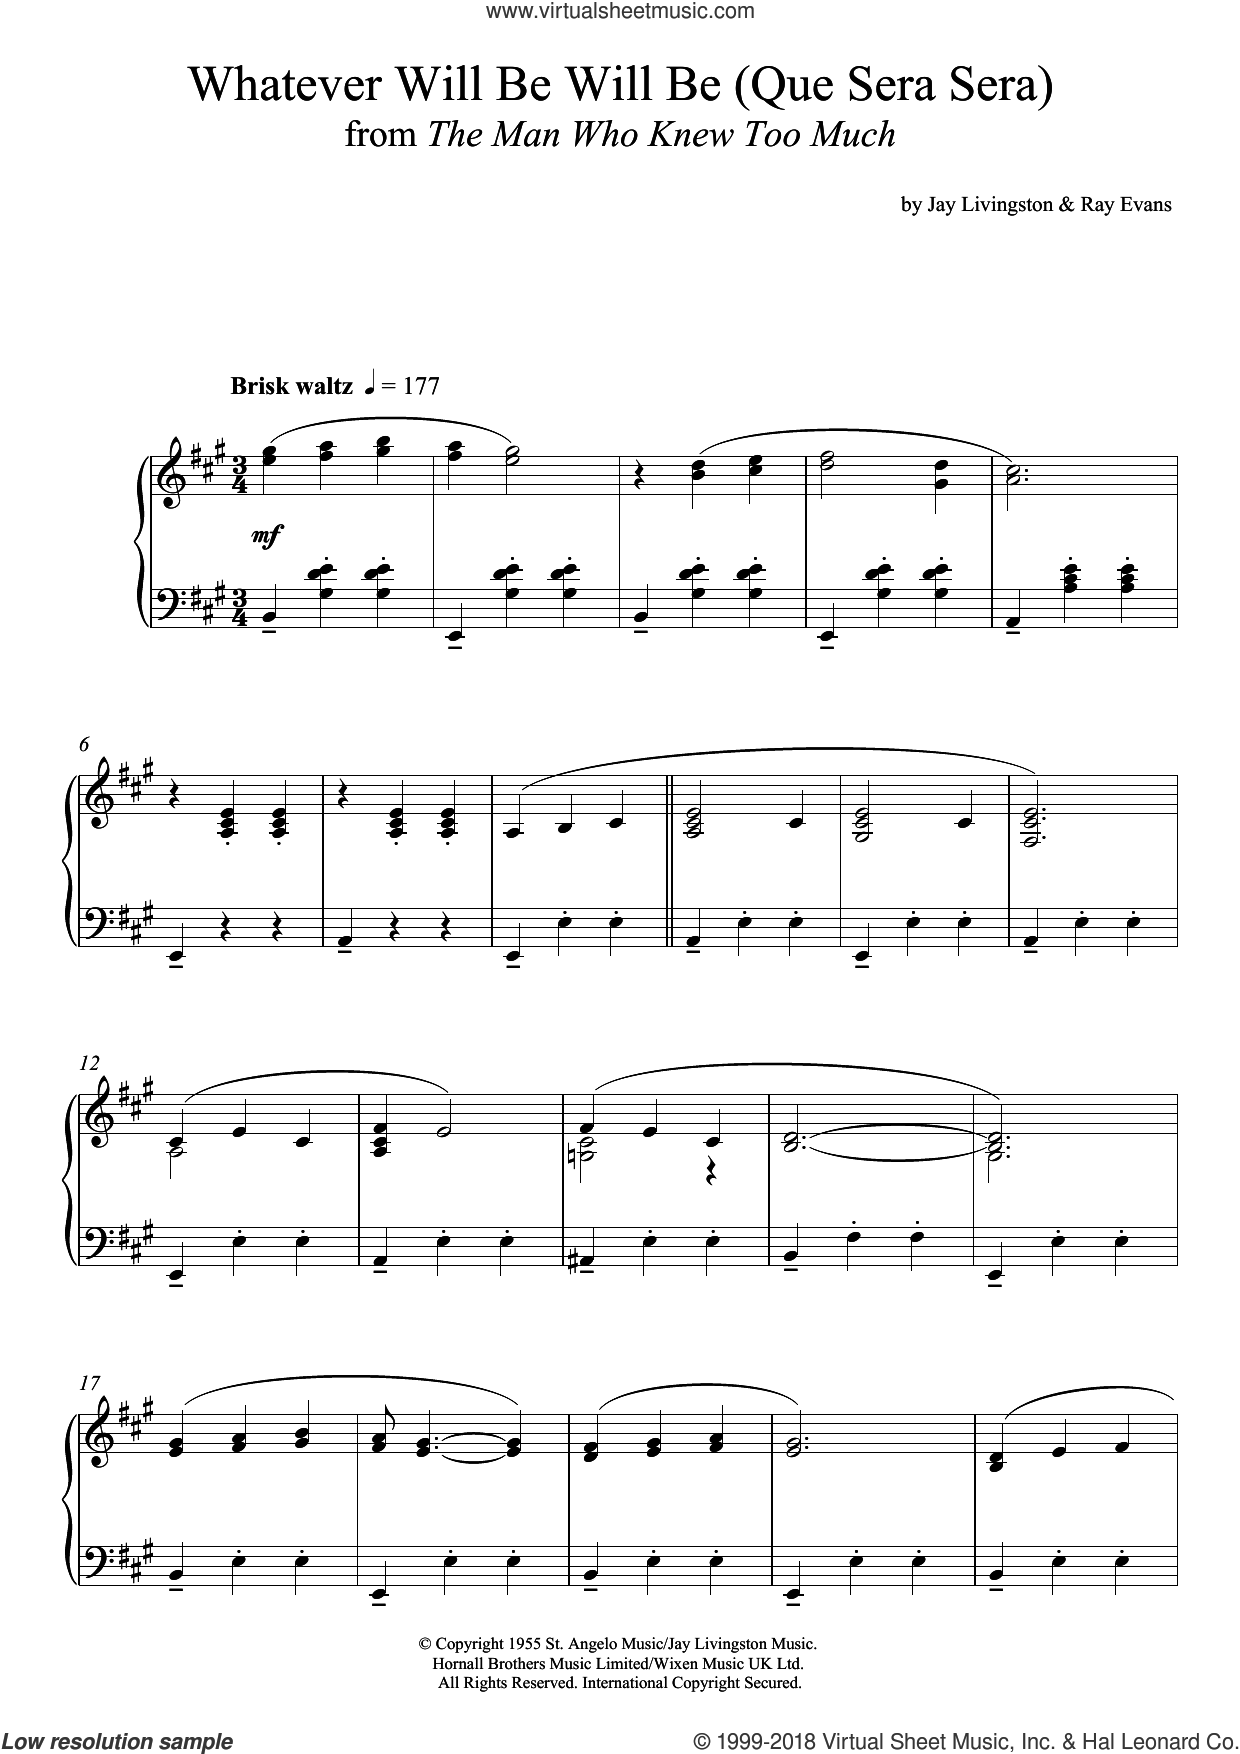 Whatever Will Be, Will Be (Que Sera Sera) sheet music for piano solo by Jay Livingston